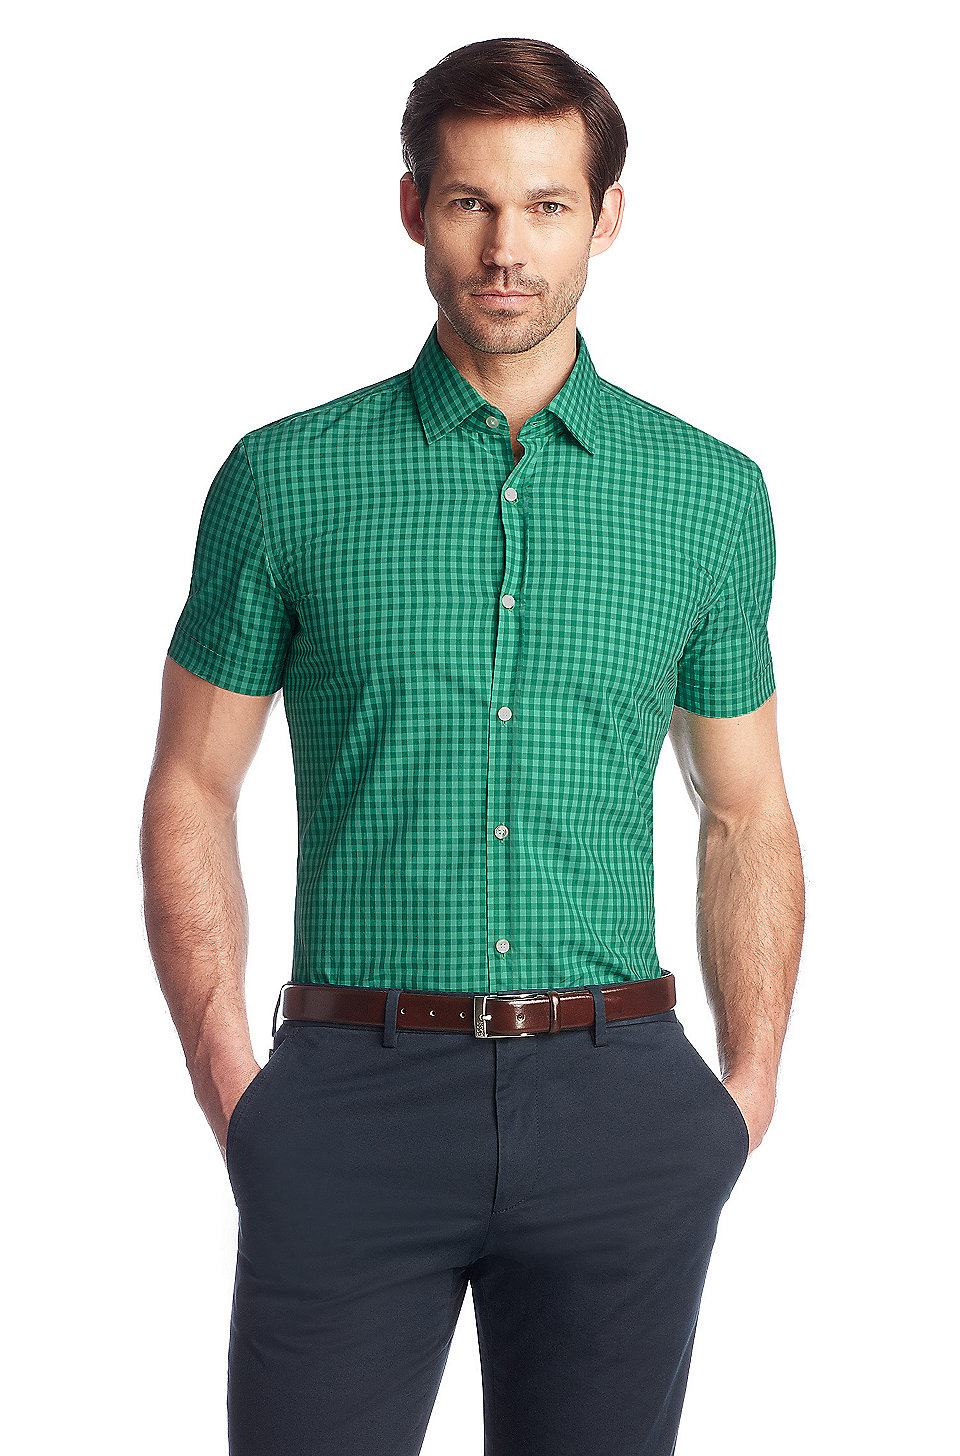 Find great deals on eBay for slim fit business shirts. Shop with confidence.